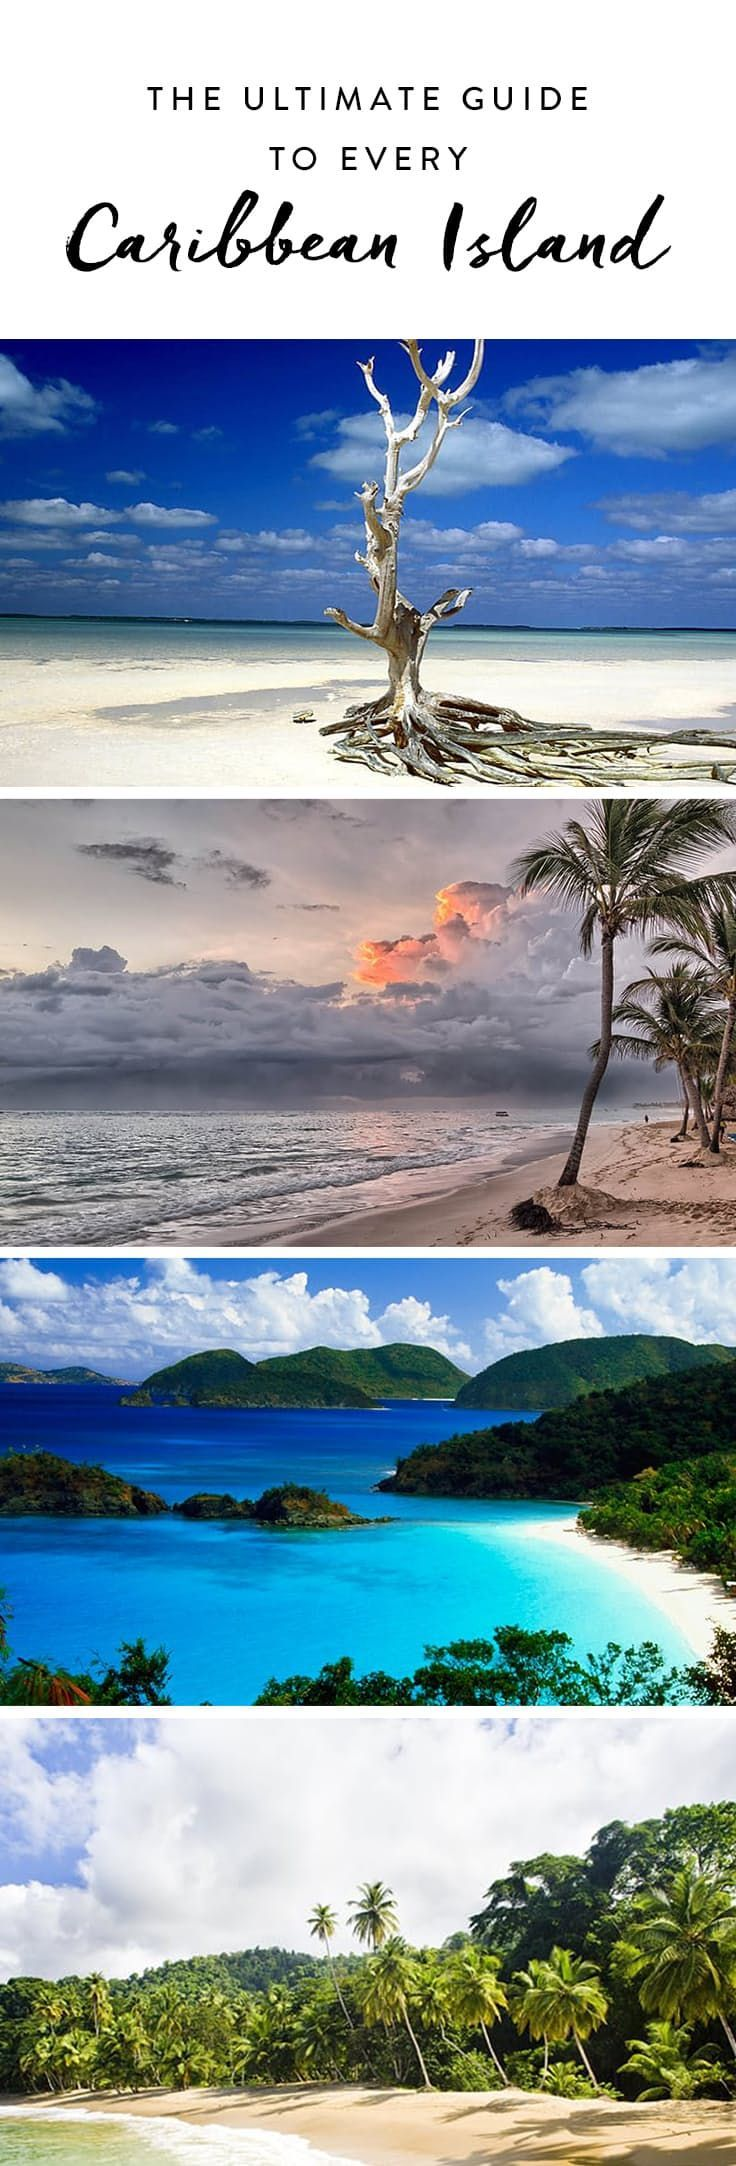 The Ultimate Guide to Every Caribbean Island | Tourism ...